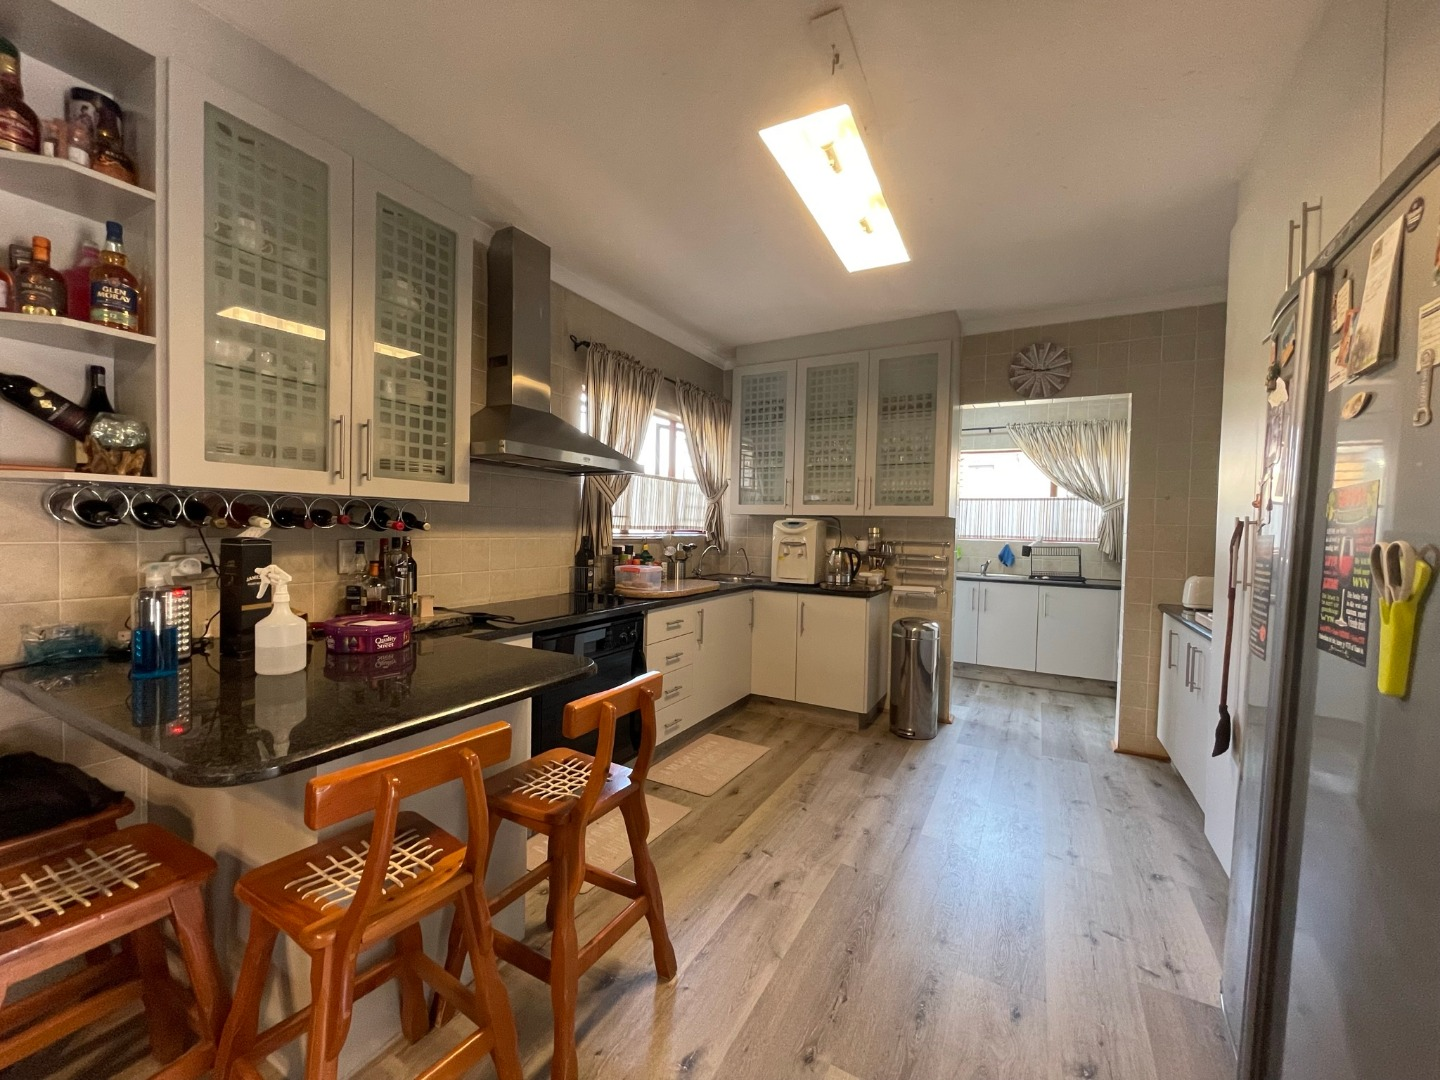 3 Bedroom Townhouse For Sale in Sonneveld